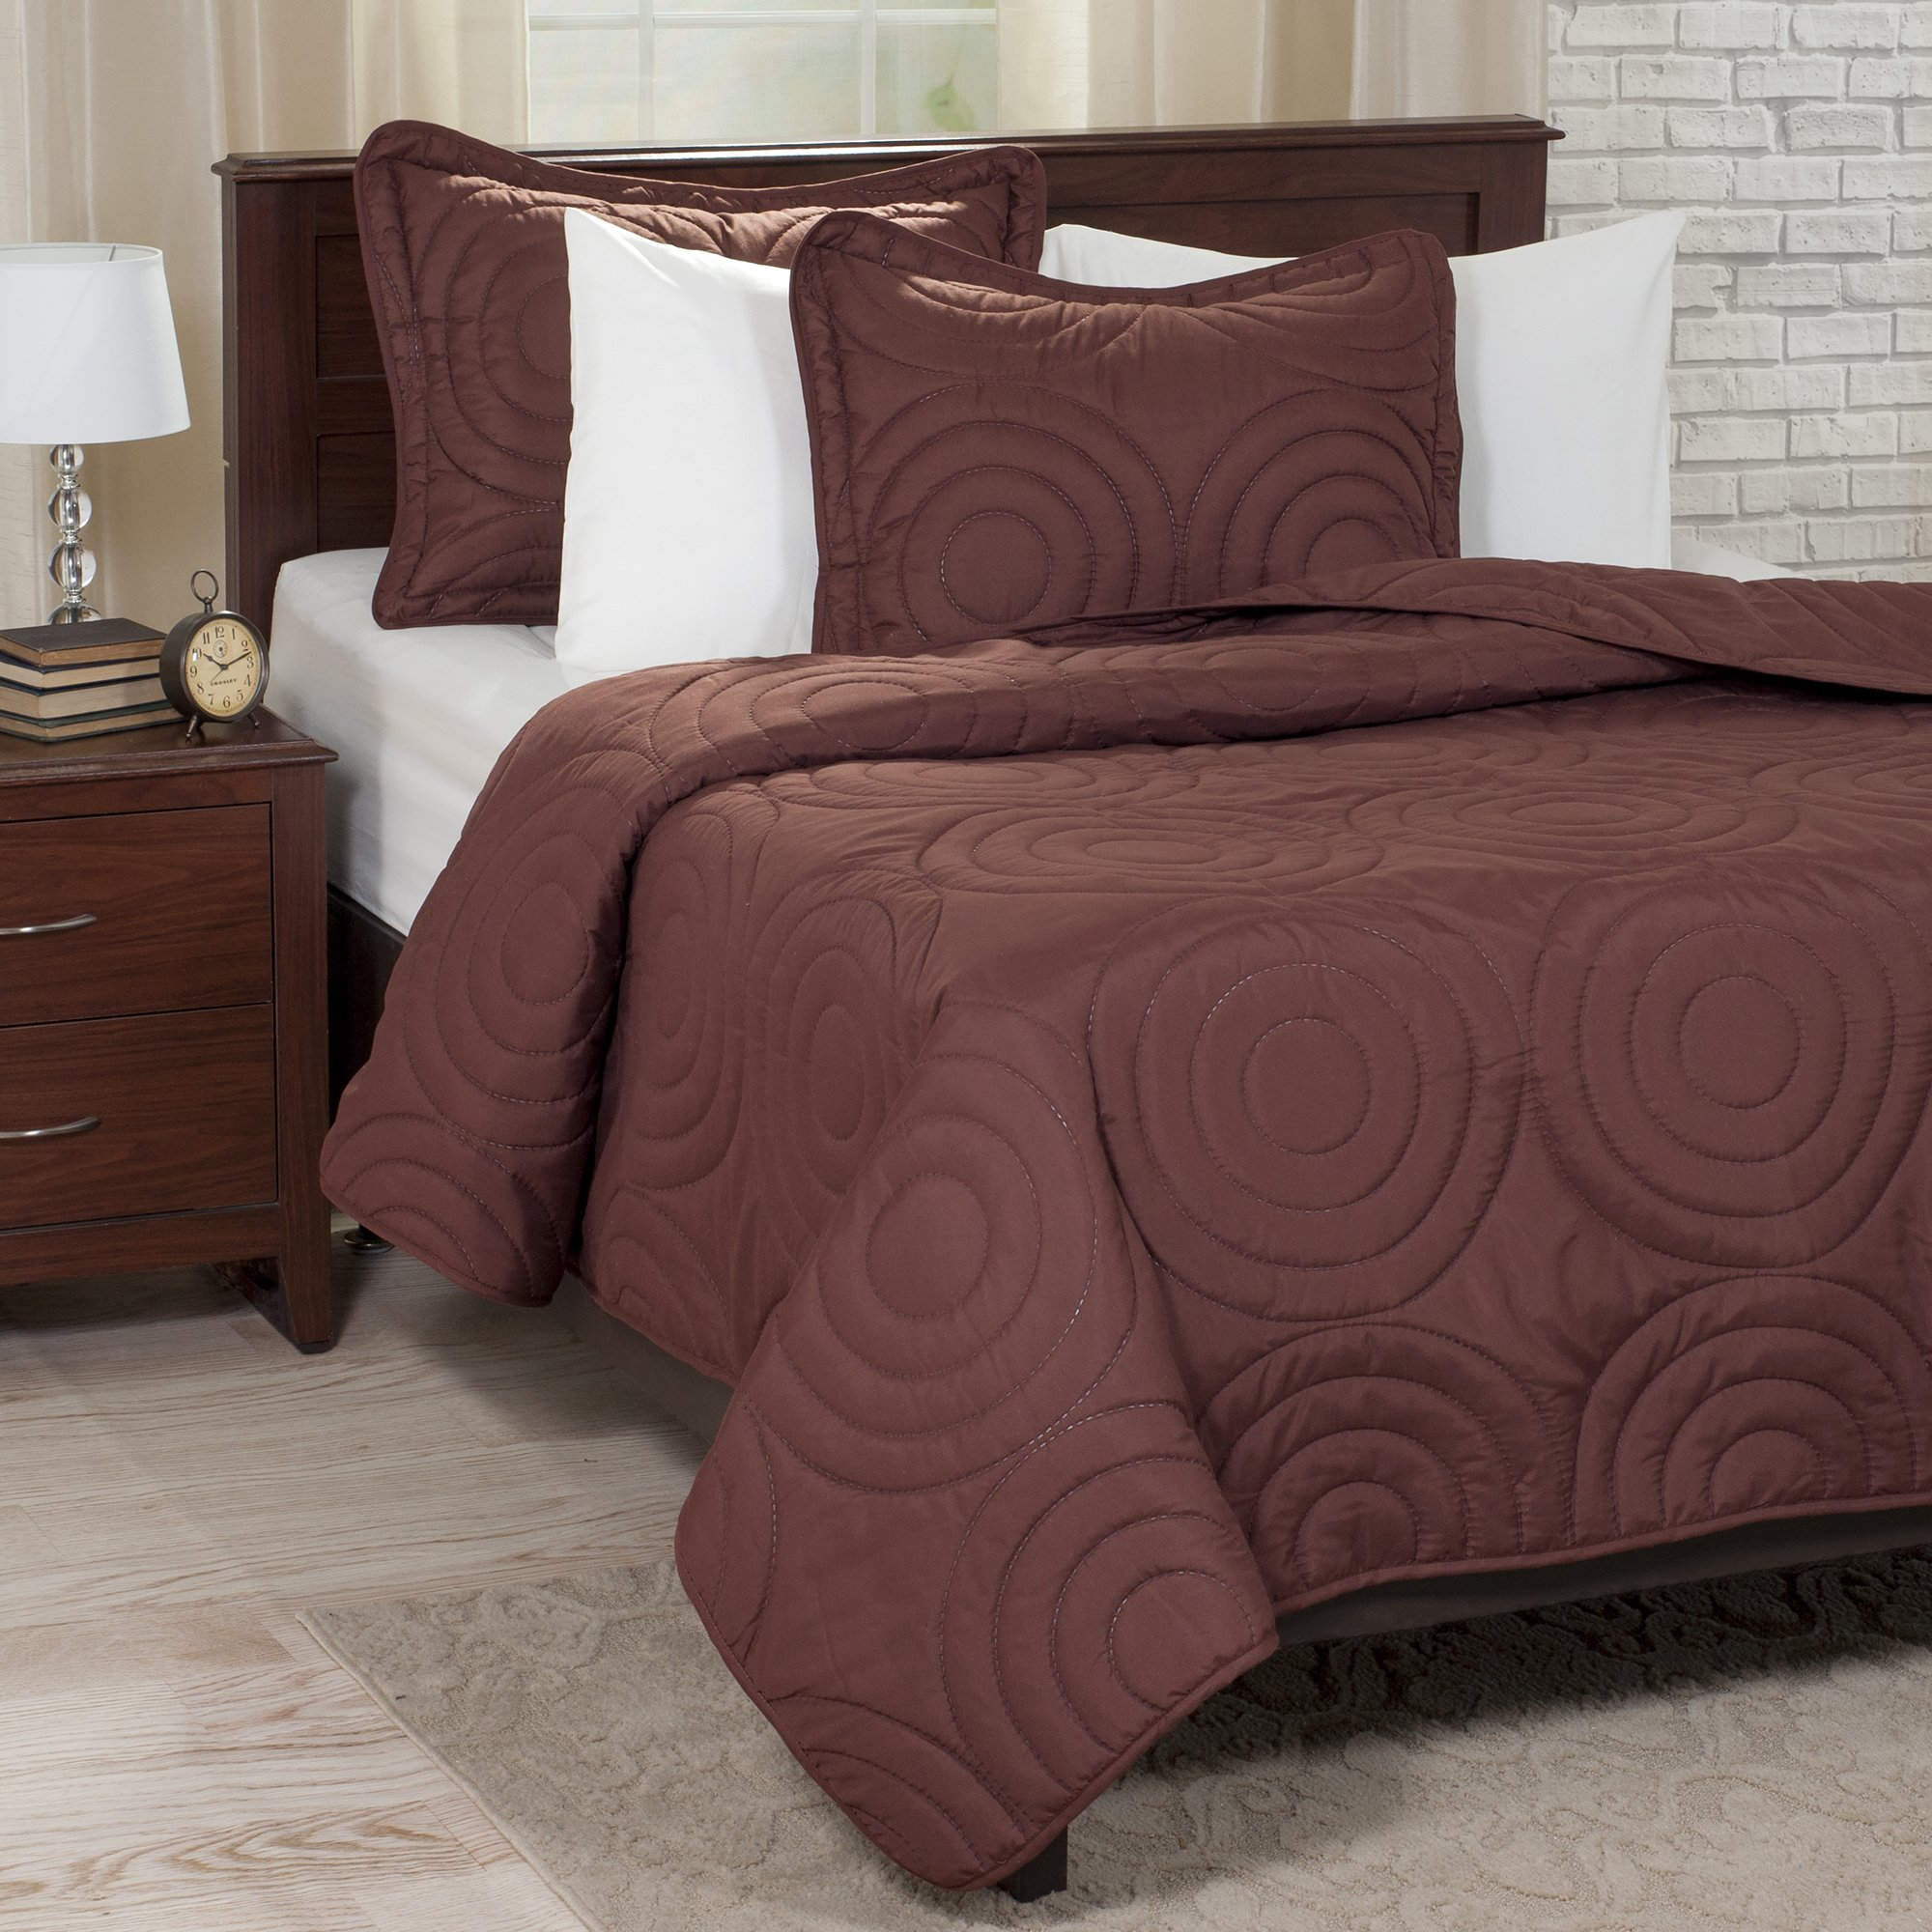 Lavish Home Solid Embossed 3 Piece Quilt Set - King - Chocolate